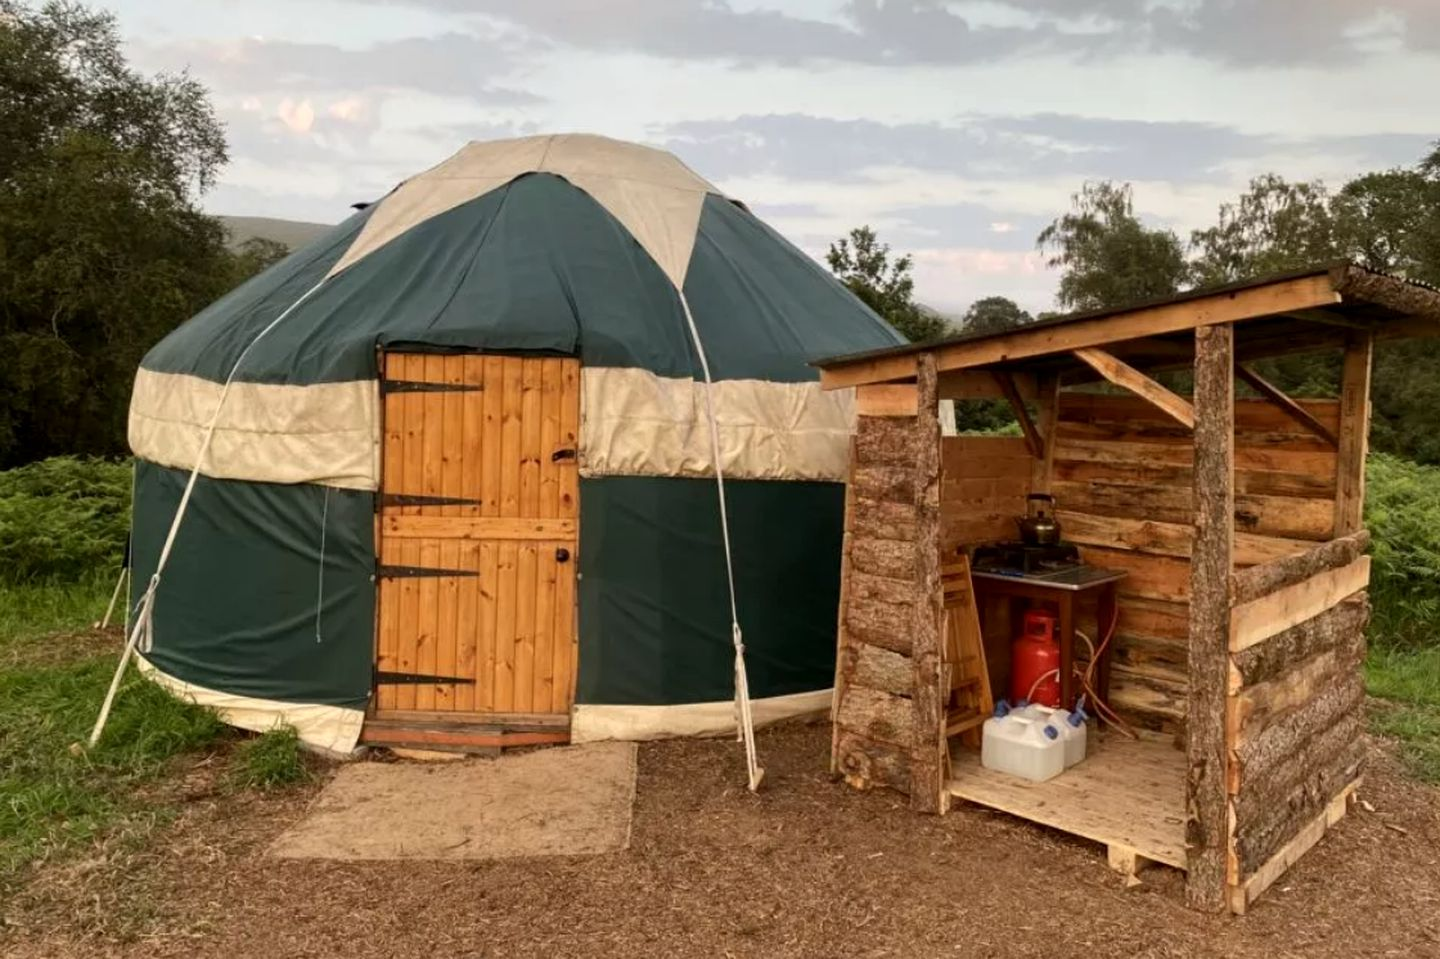 This Pennines accommodation is ideal for glamping in England